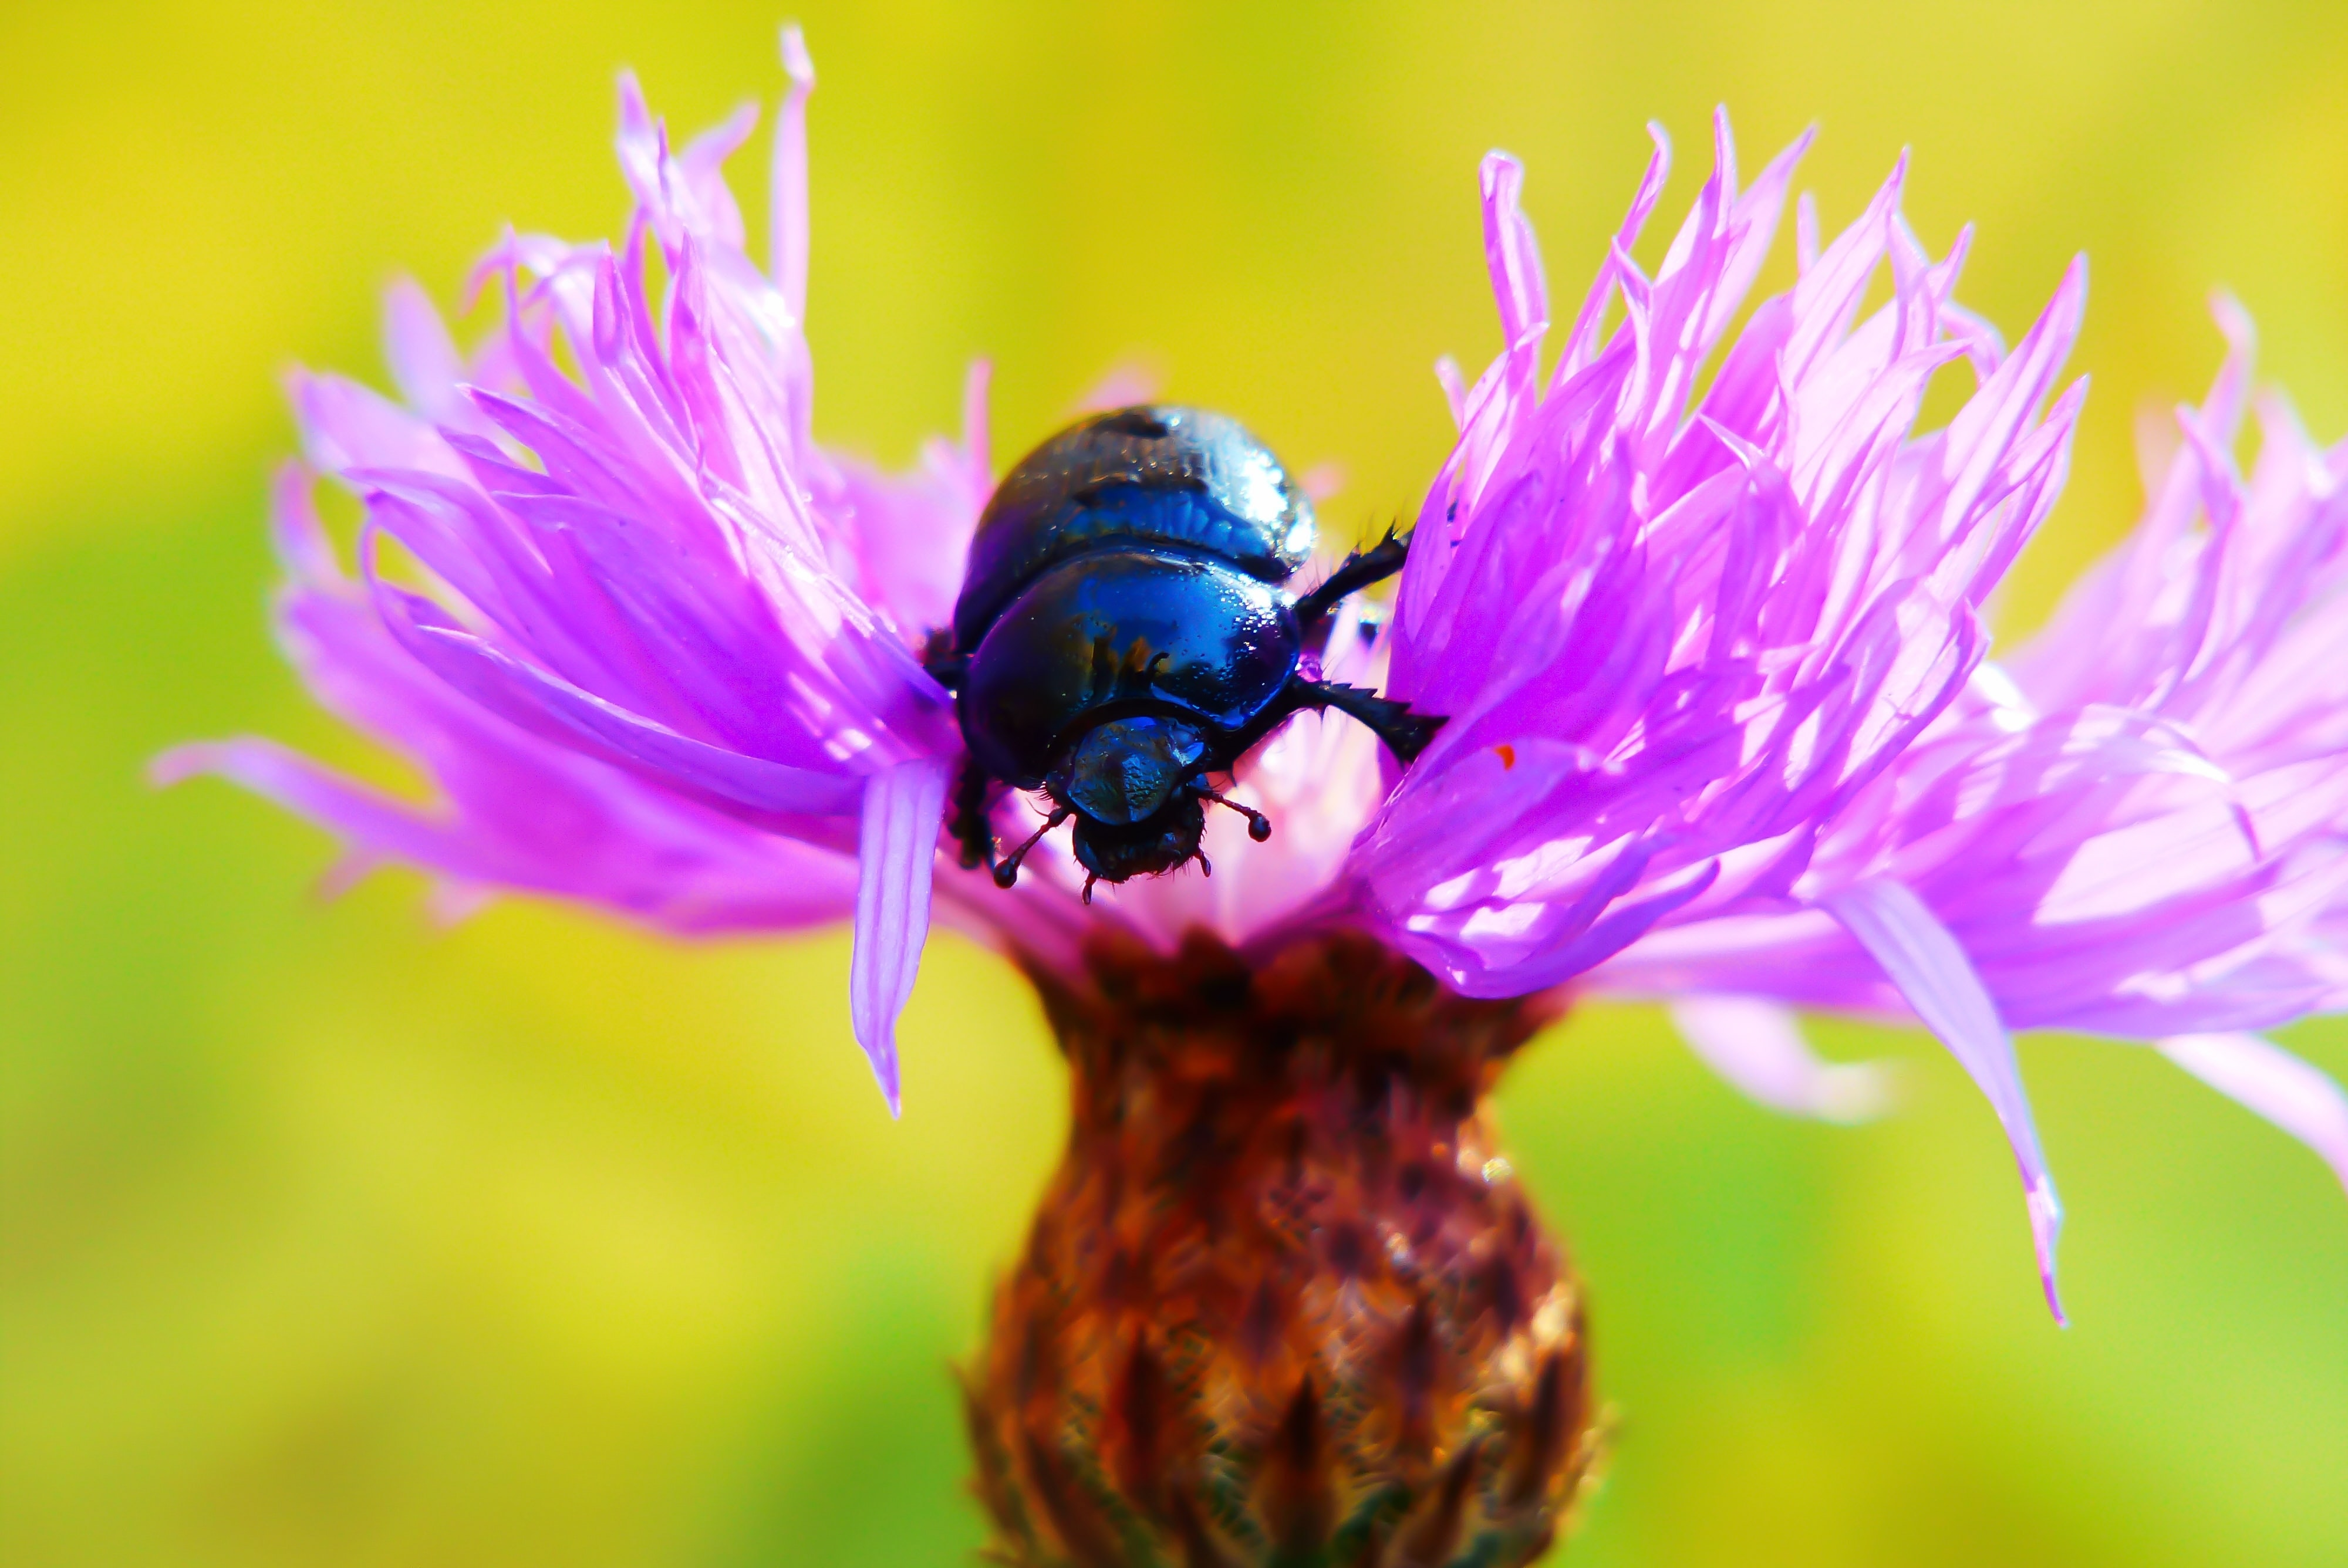 selective focus photo of black beetle on pink cluster flower during daytime